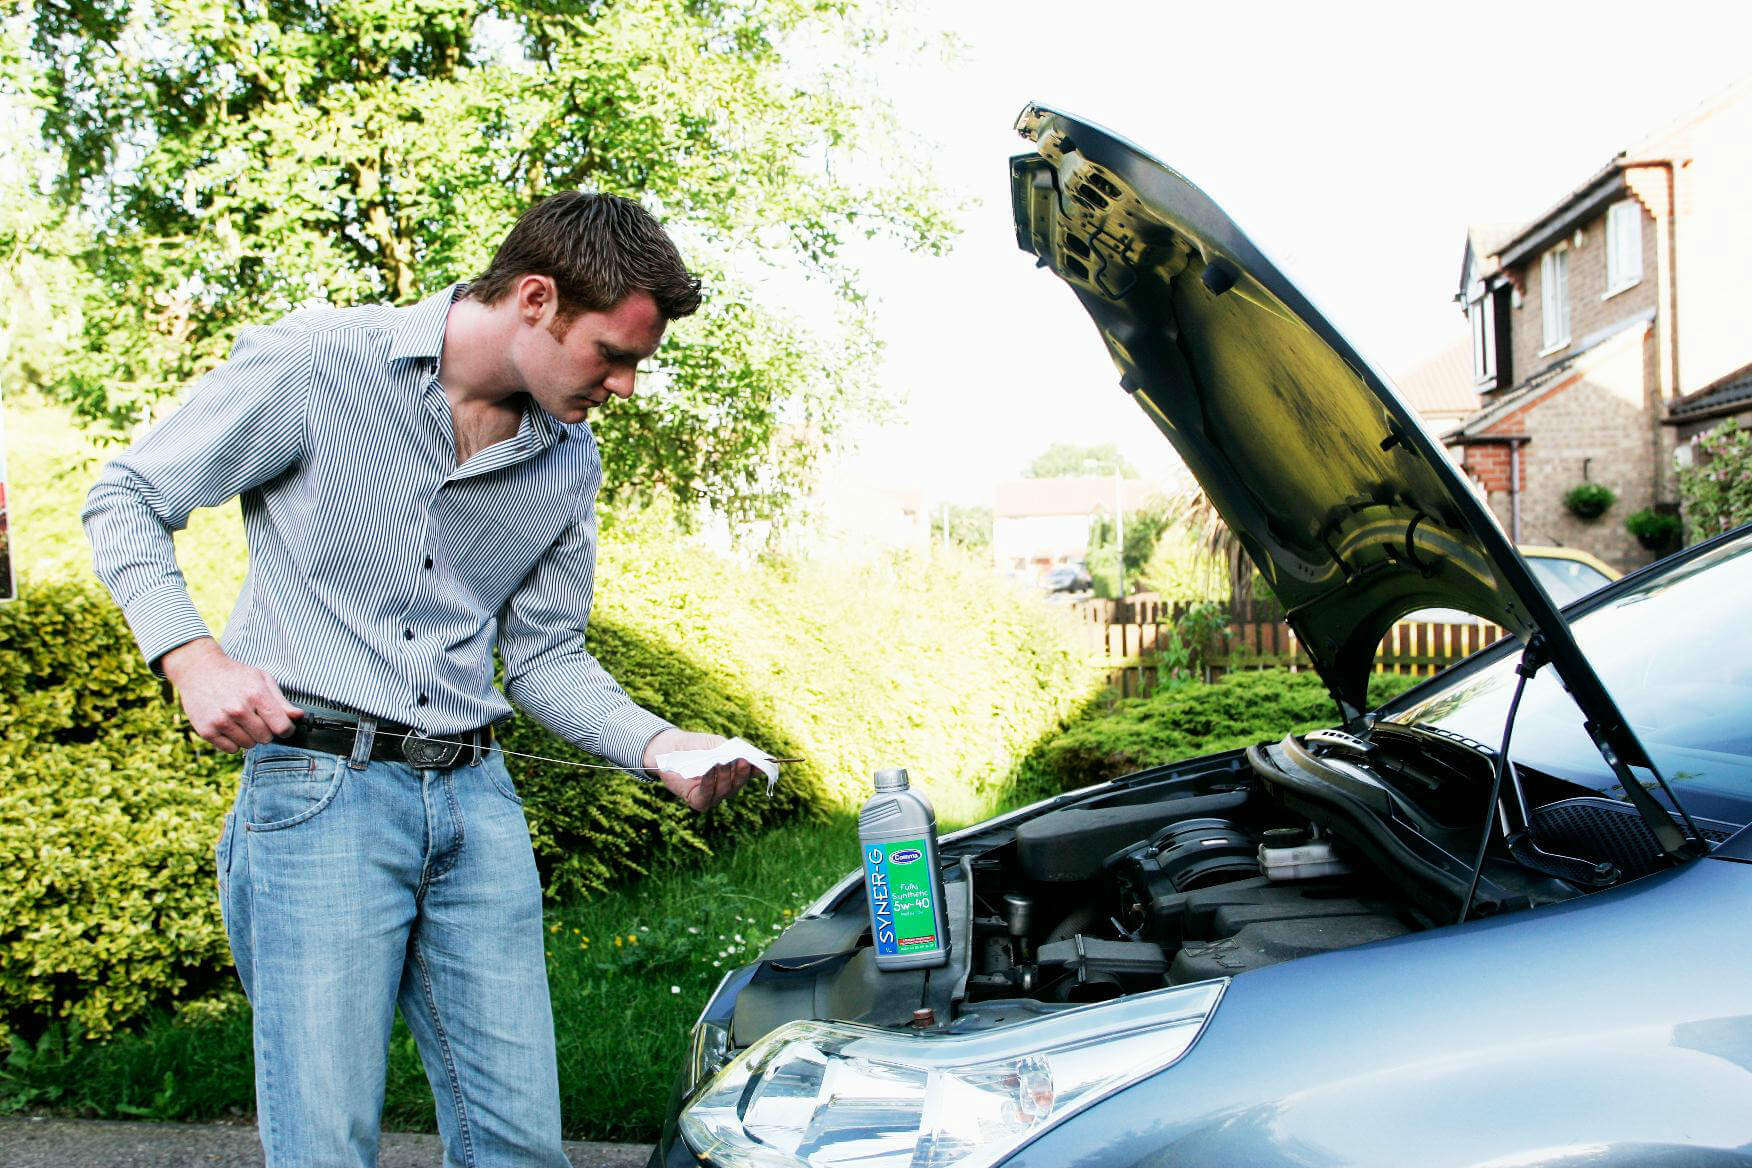 How to check and choose the correct engine oil for your car